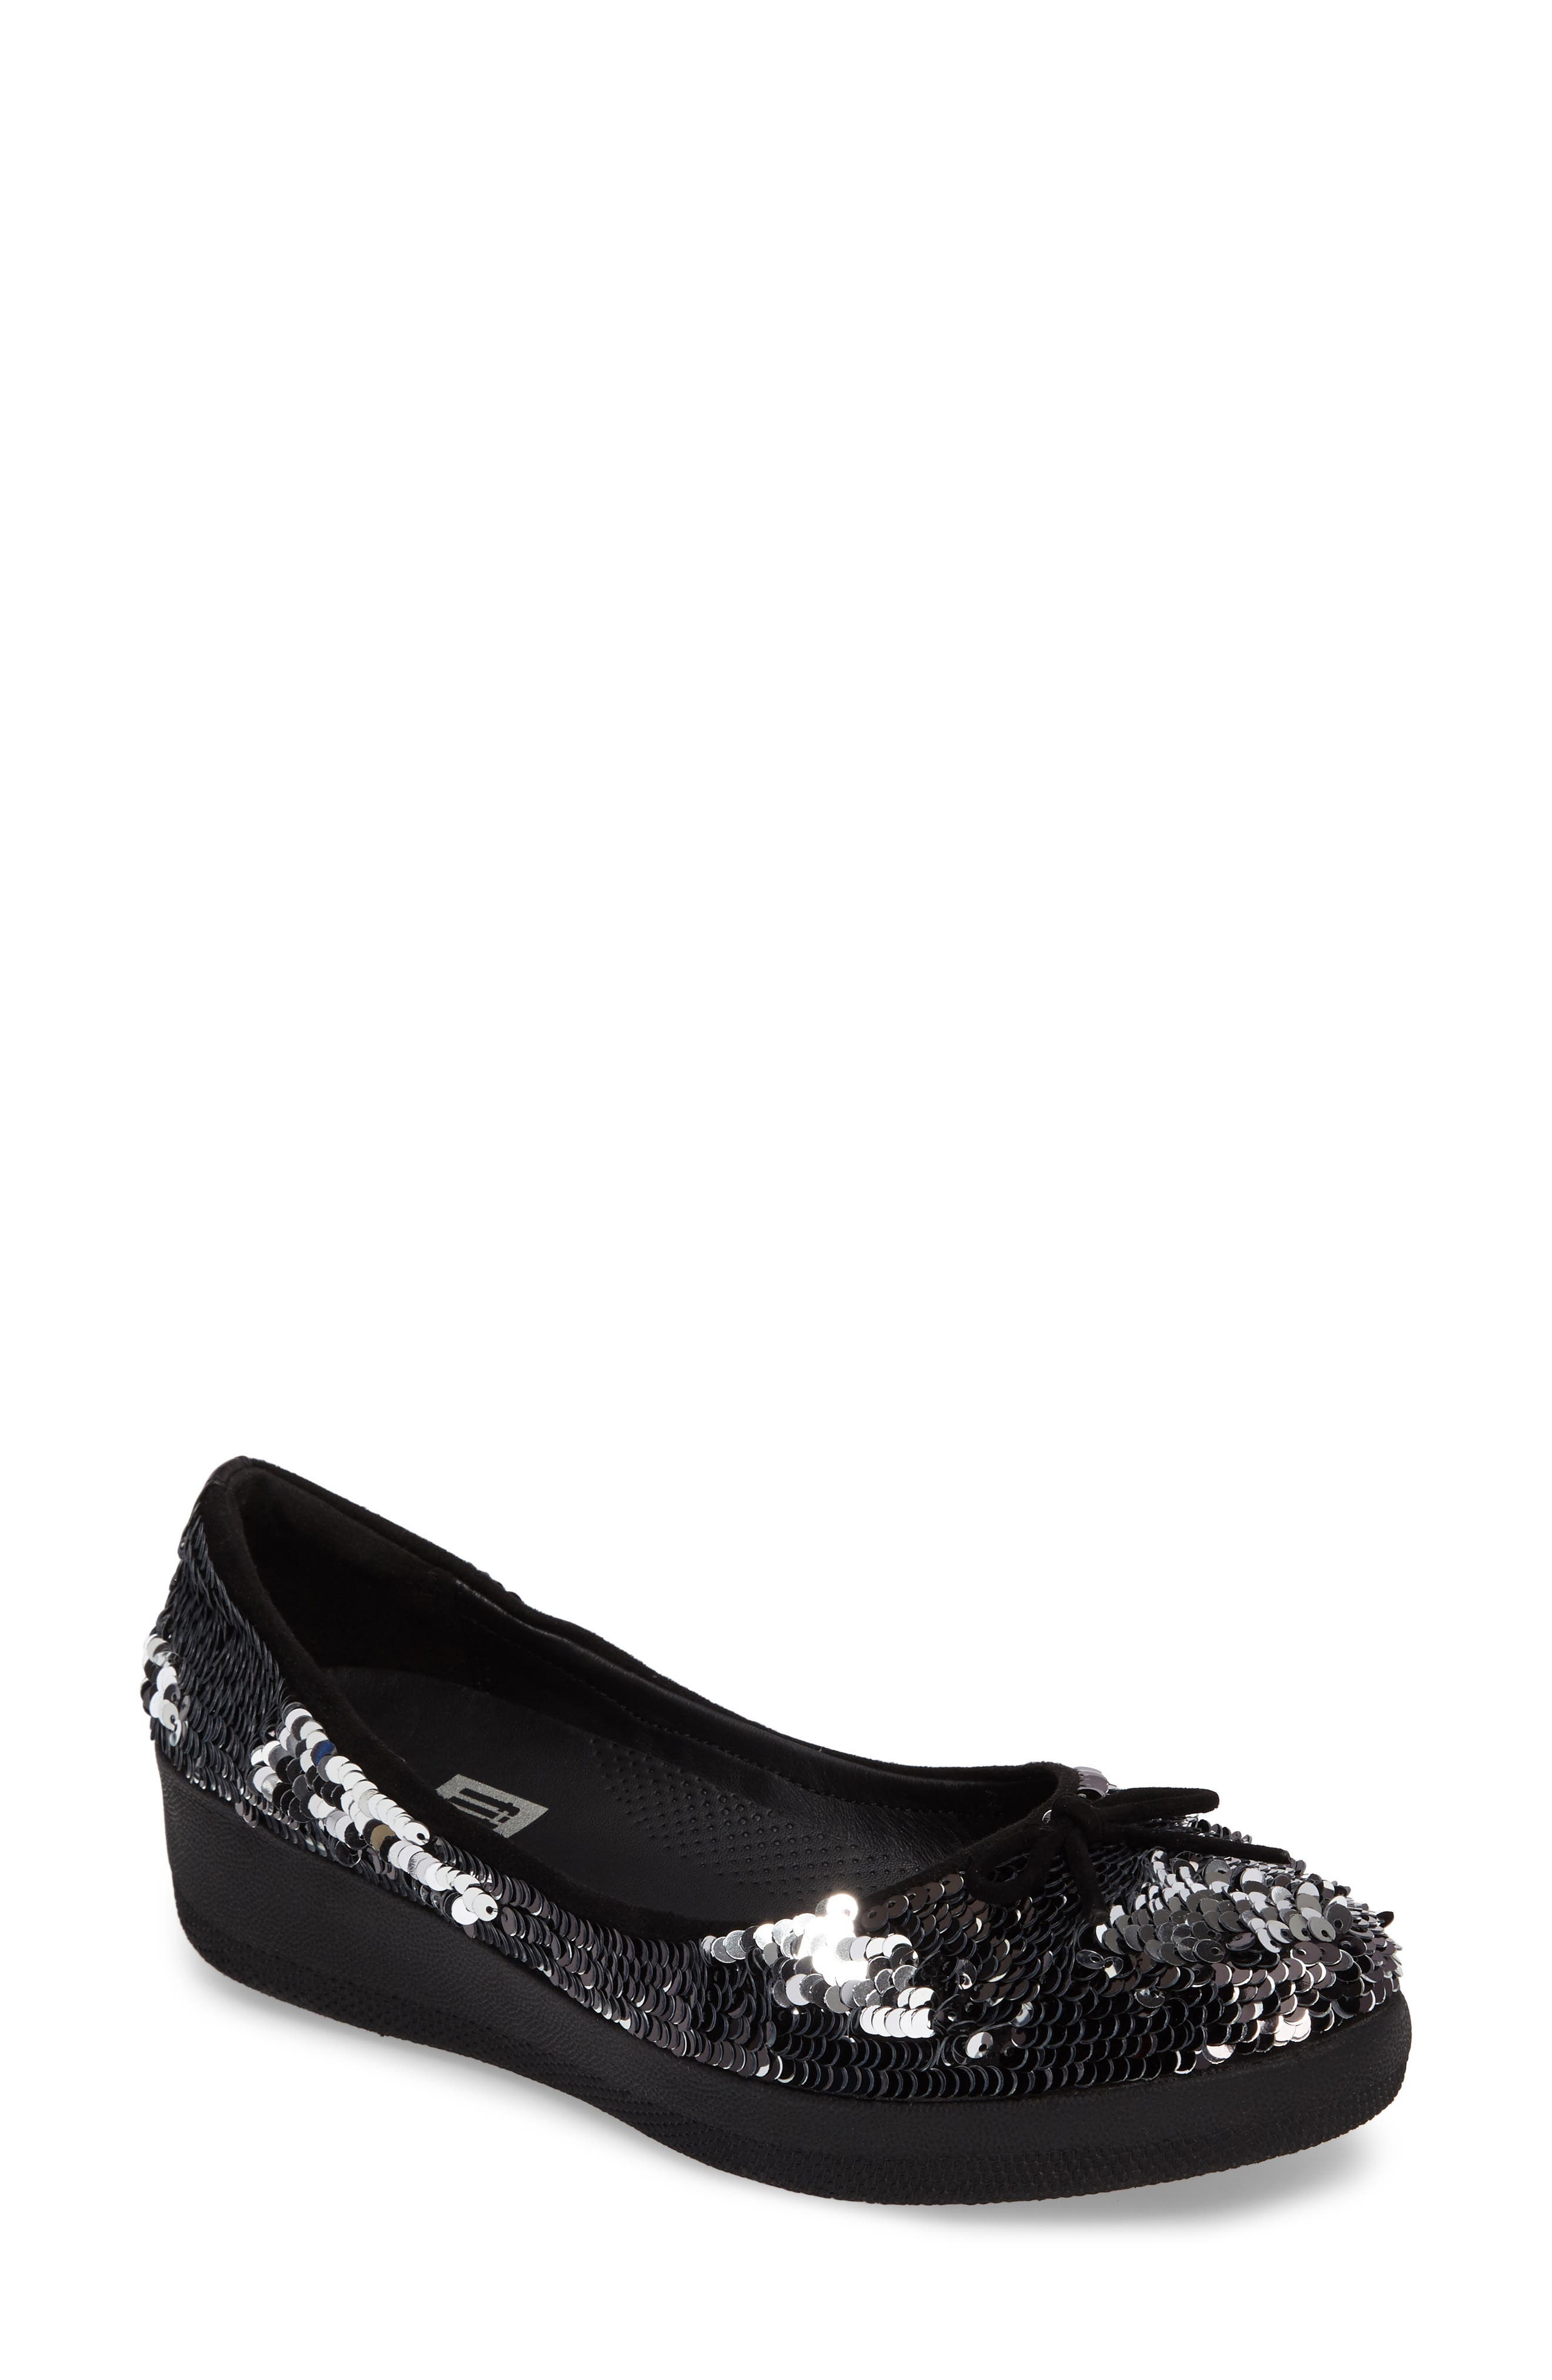 Superballerina Sequin Ballet Flat,                         Main,                         color, Black Fabric